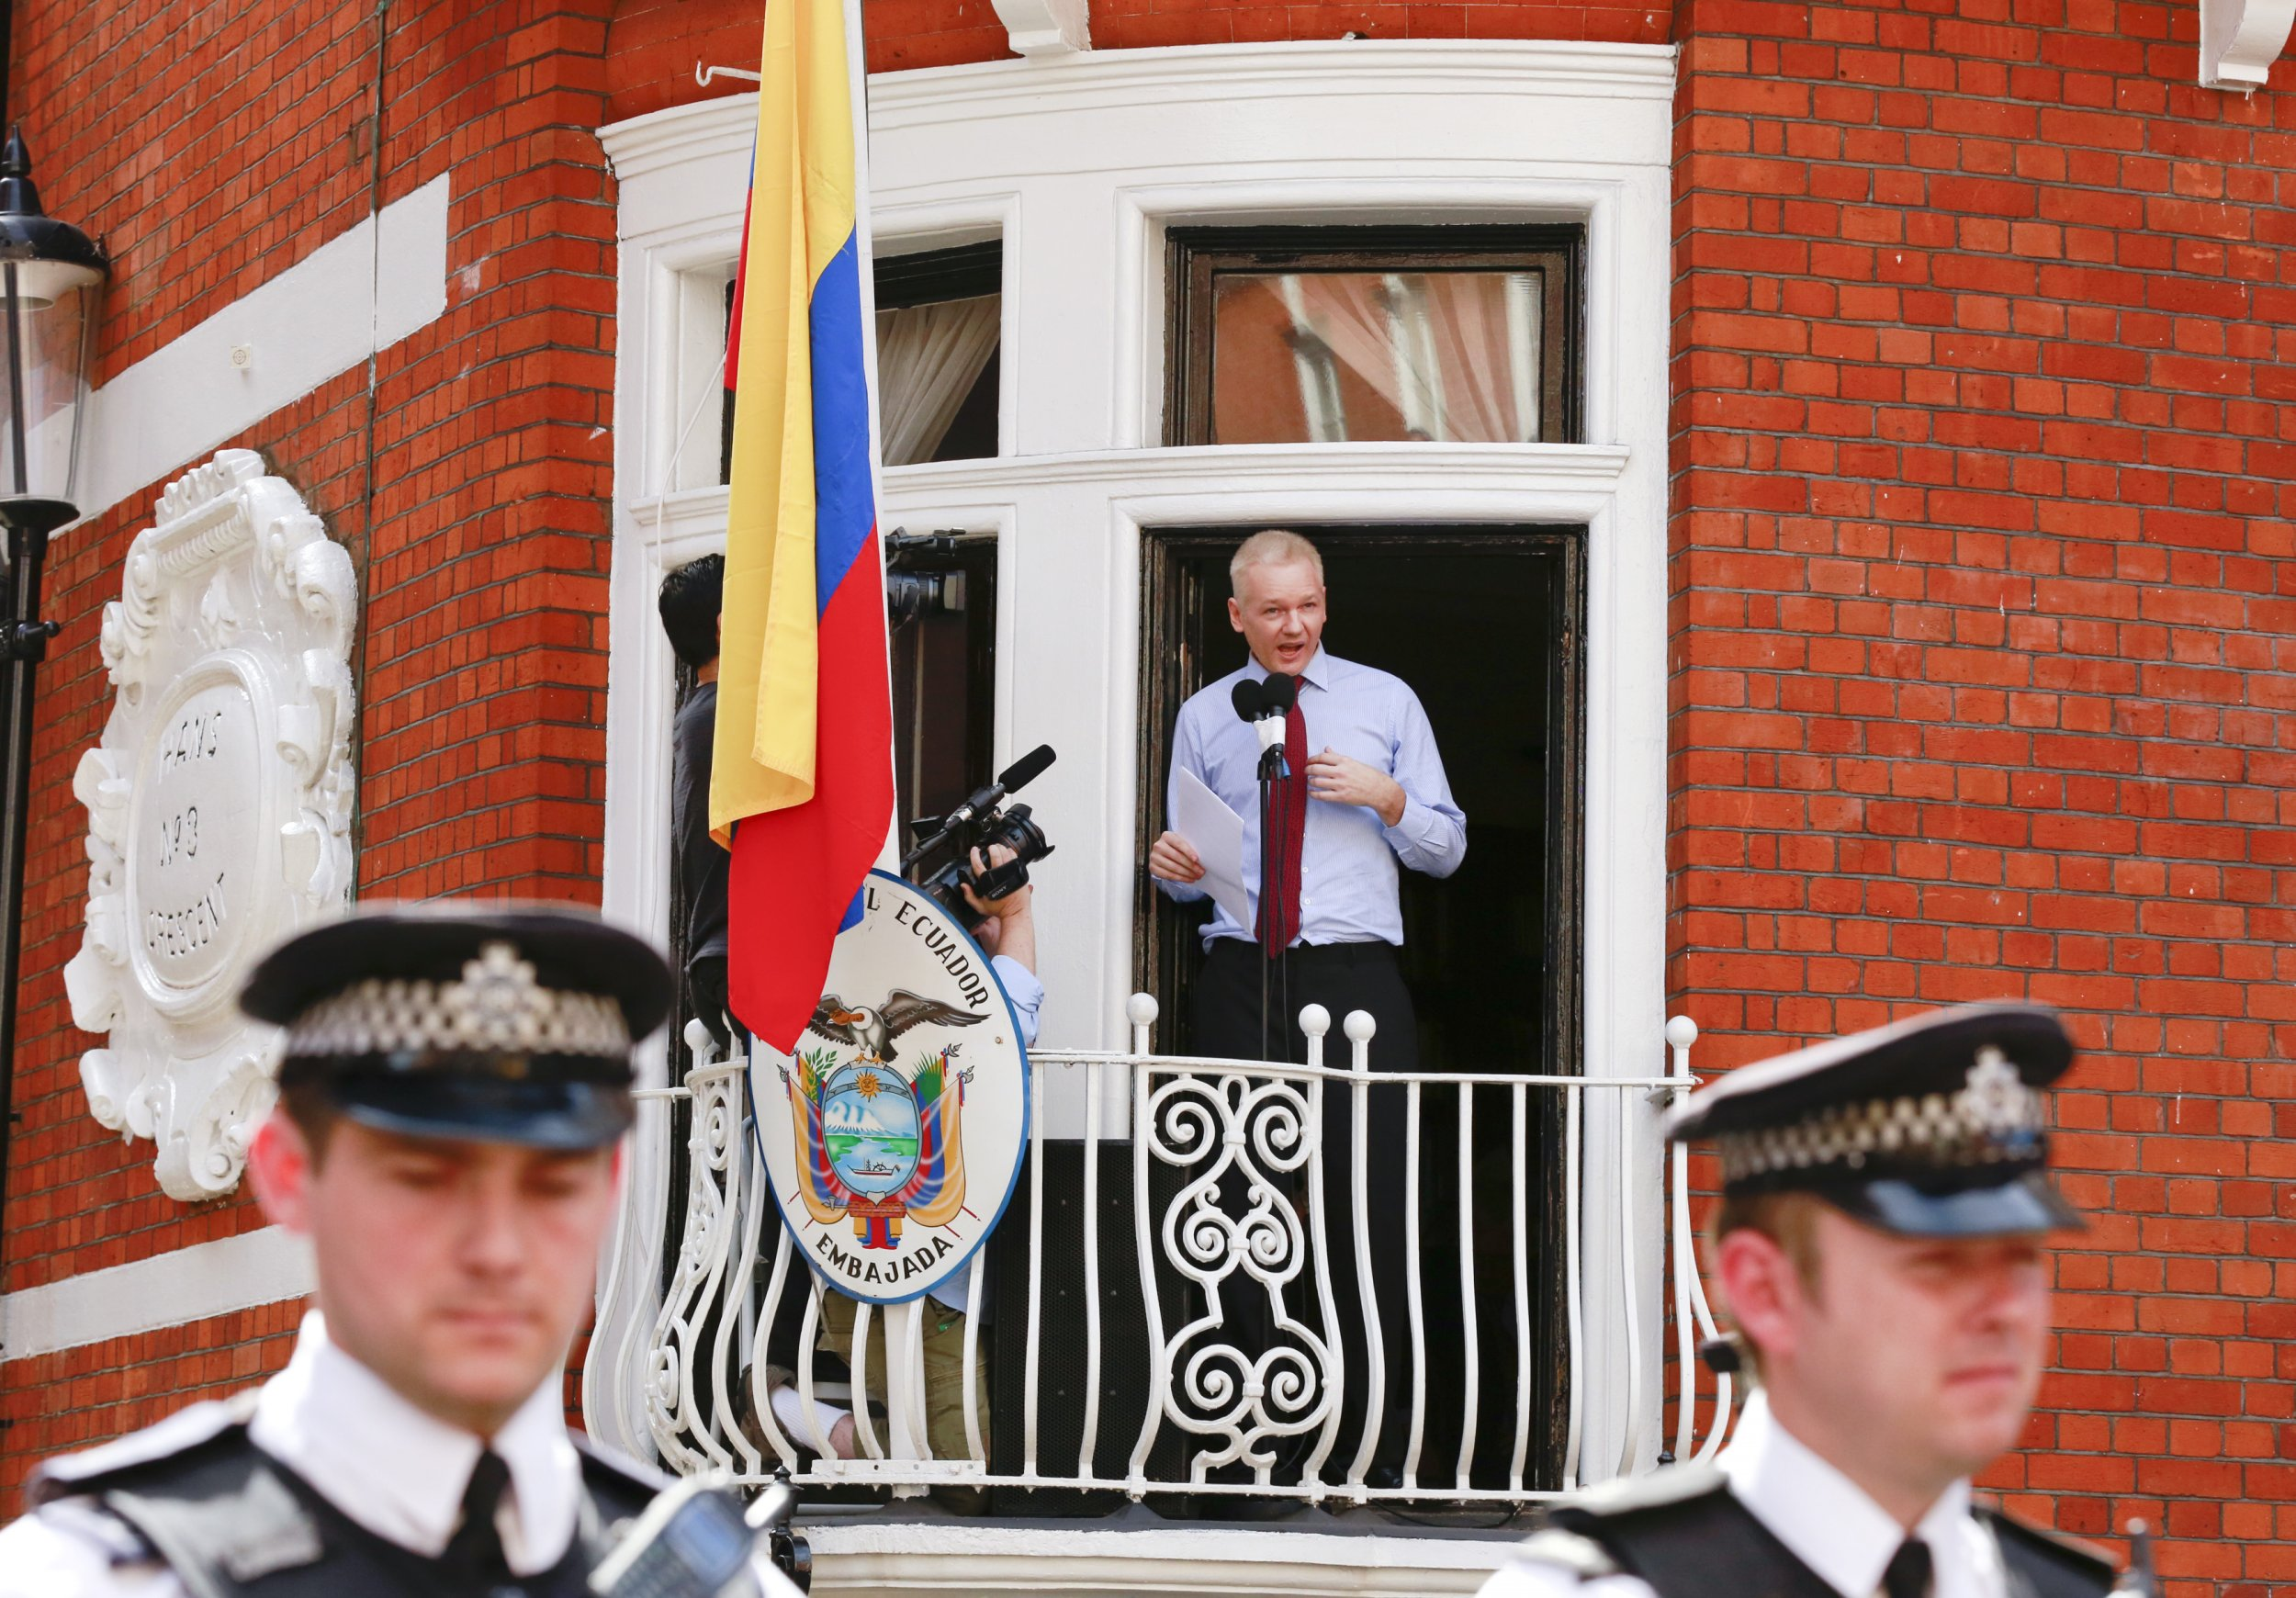 Julian Assange speaks from the balcony of the Ecuadorian embassy